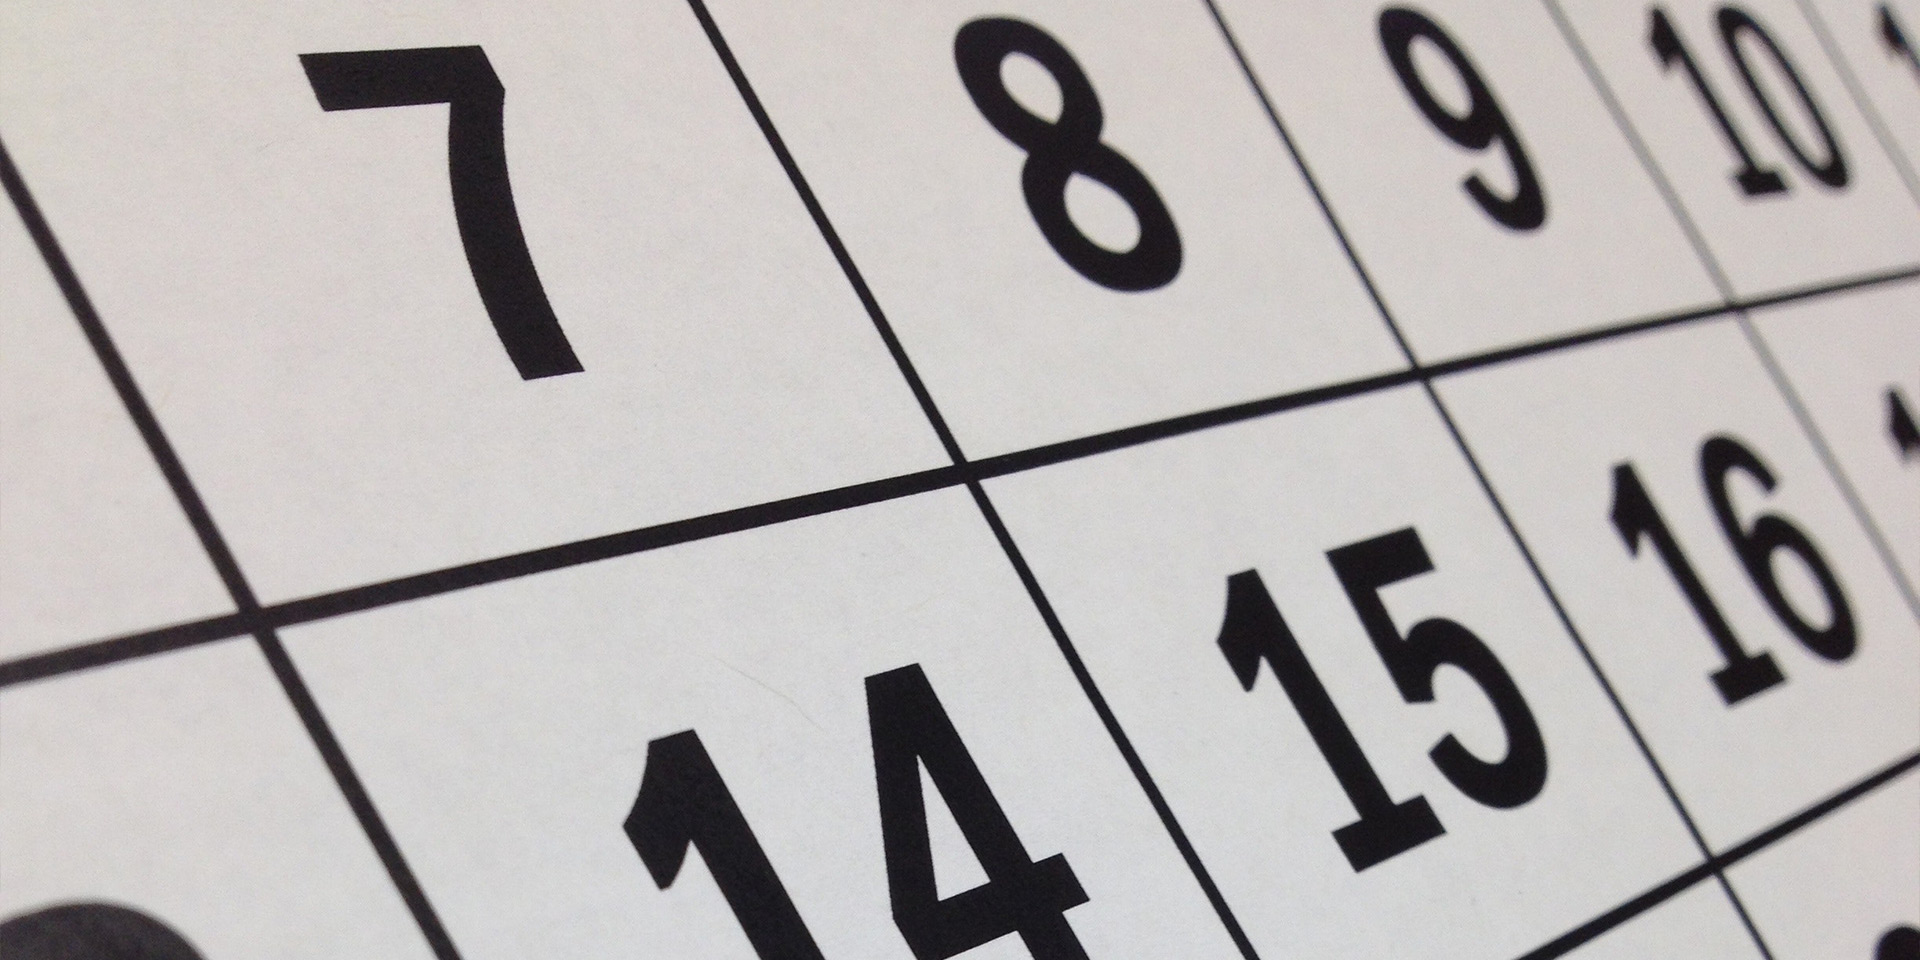 14 May 2014 - A key date for leasehold management